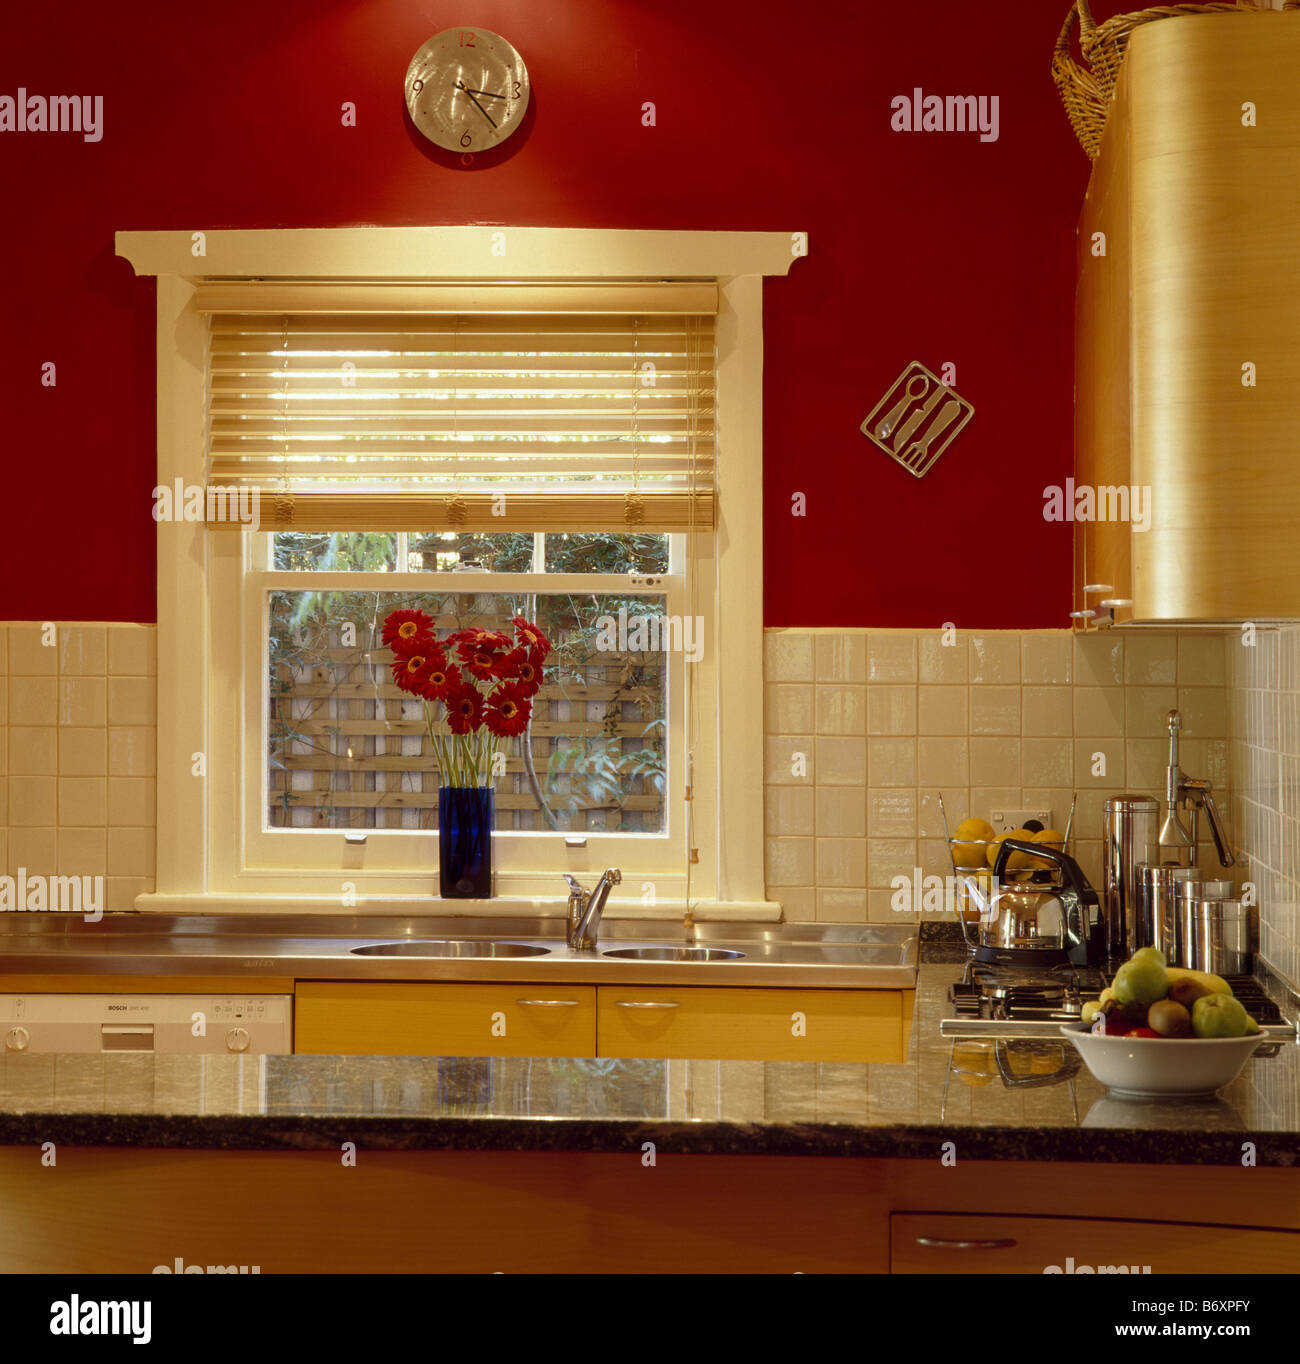 Cream pinoleum blind on window in red kitchen with cream ...